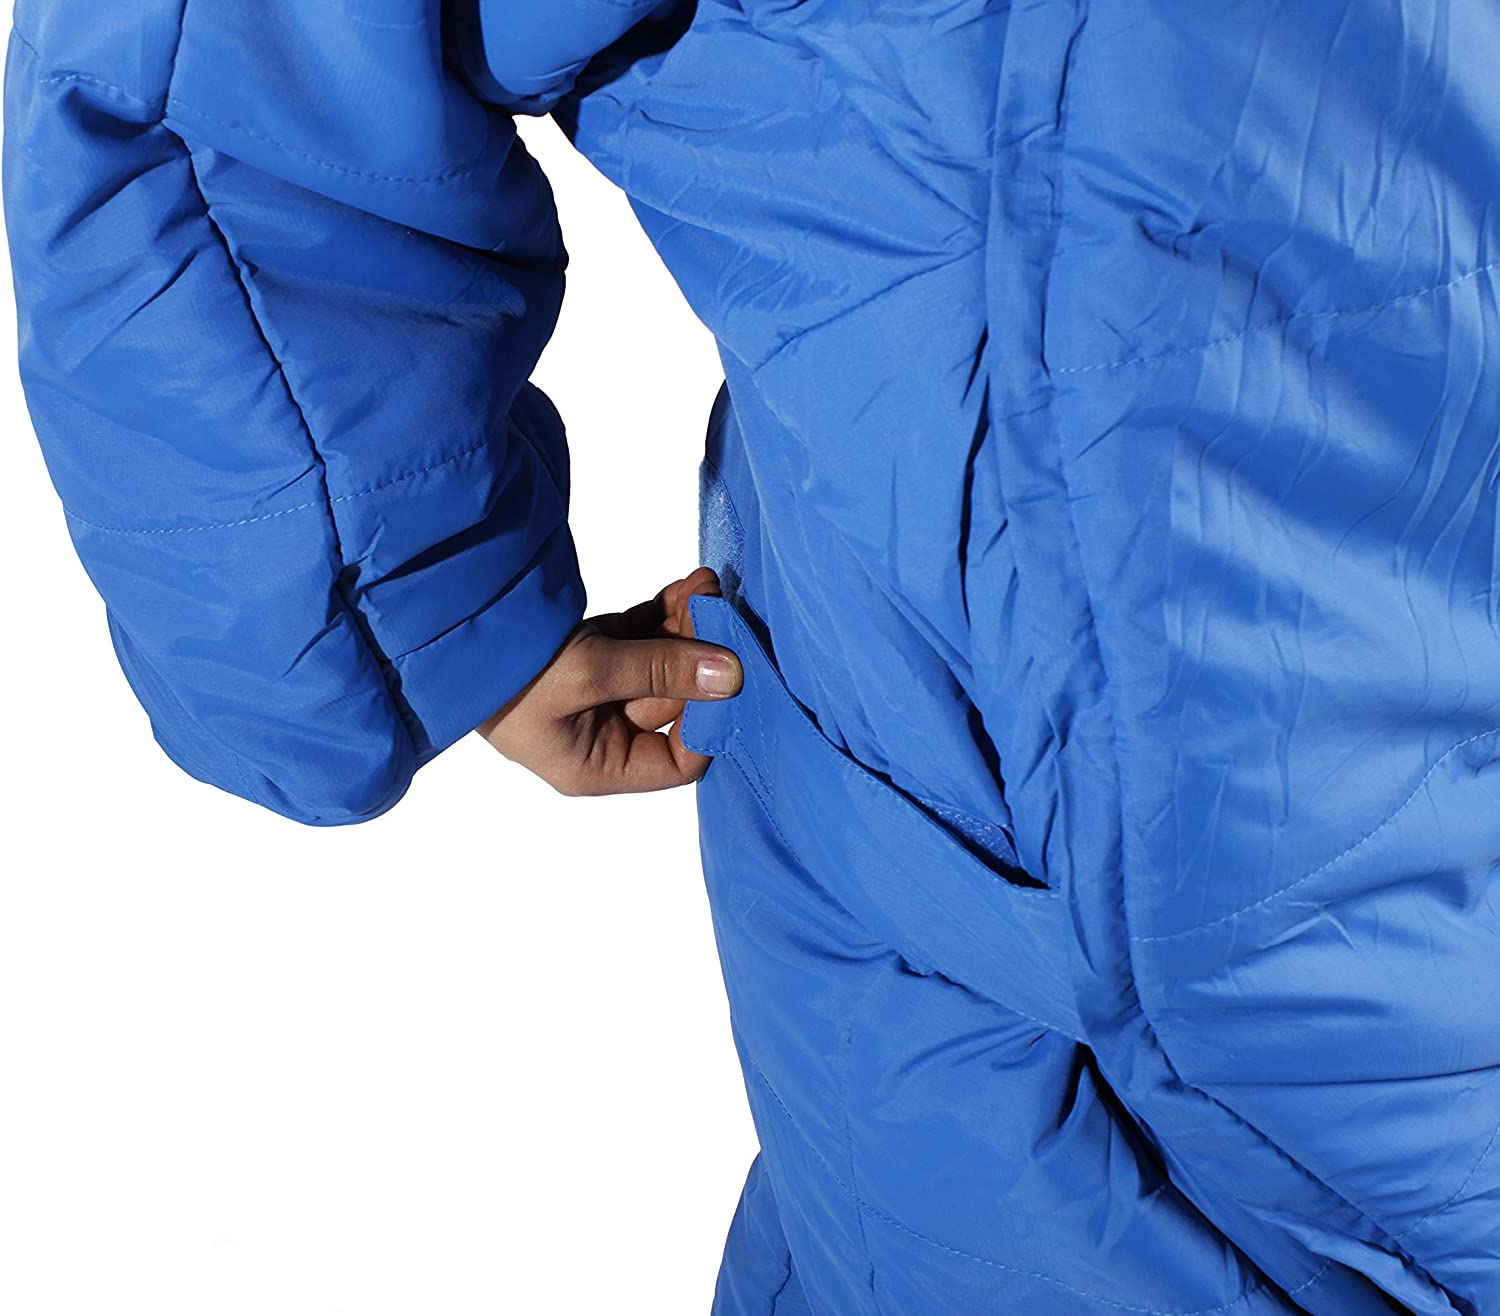 Selkbag Unisexs Original Wearable Sleeping Bag with Arms and Legs Black Anthracite Large